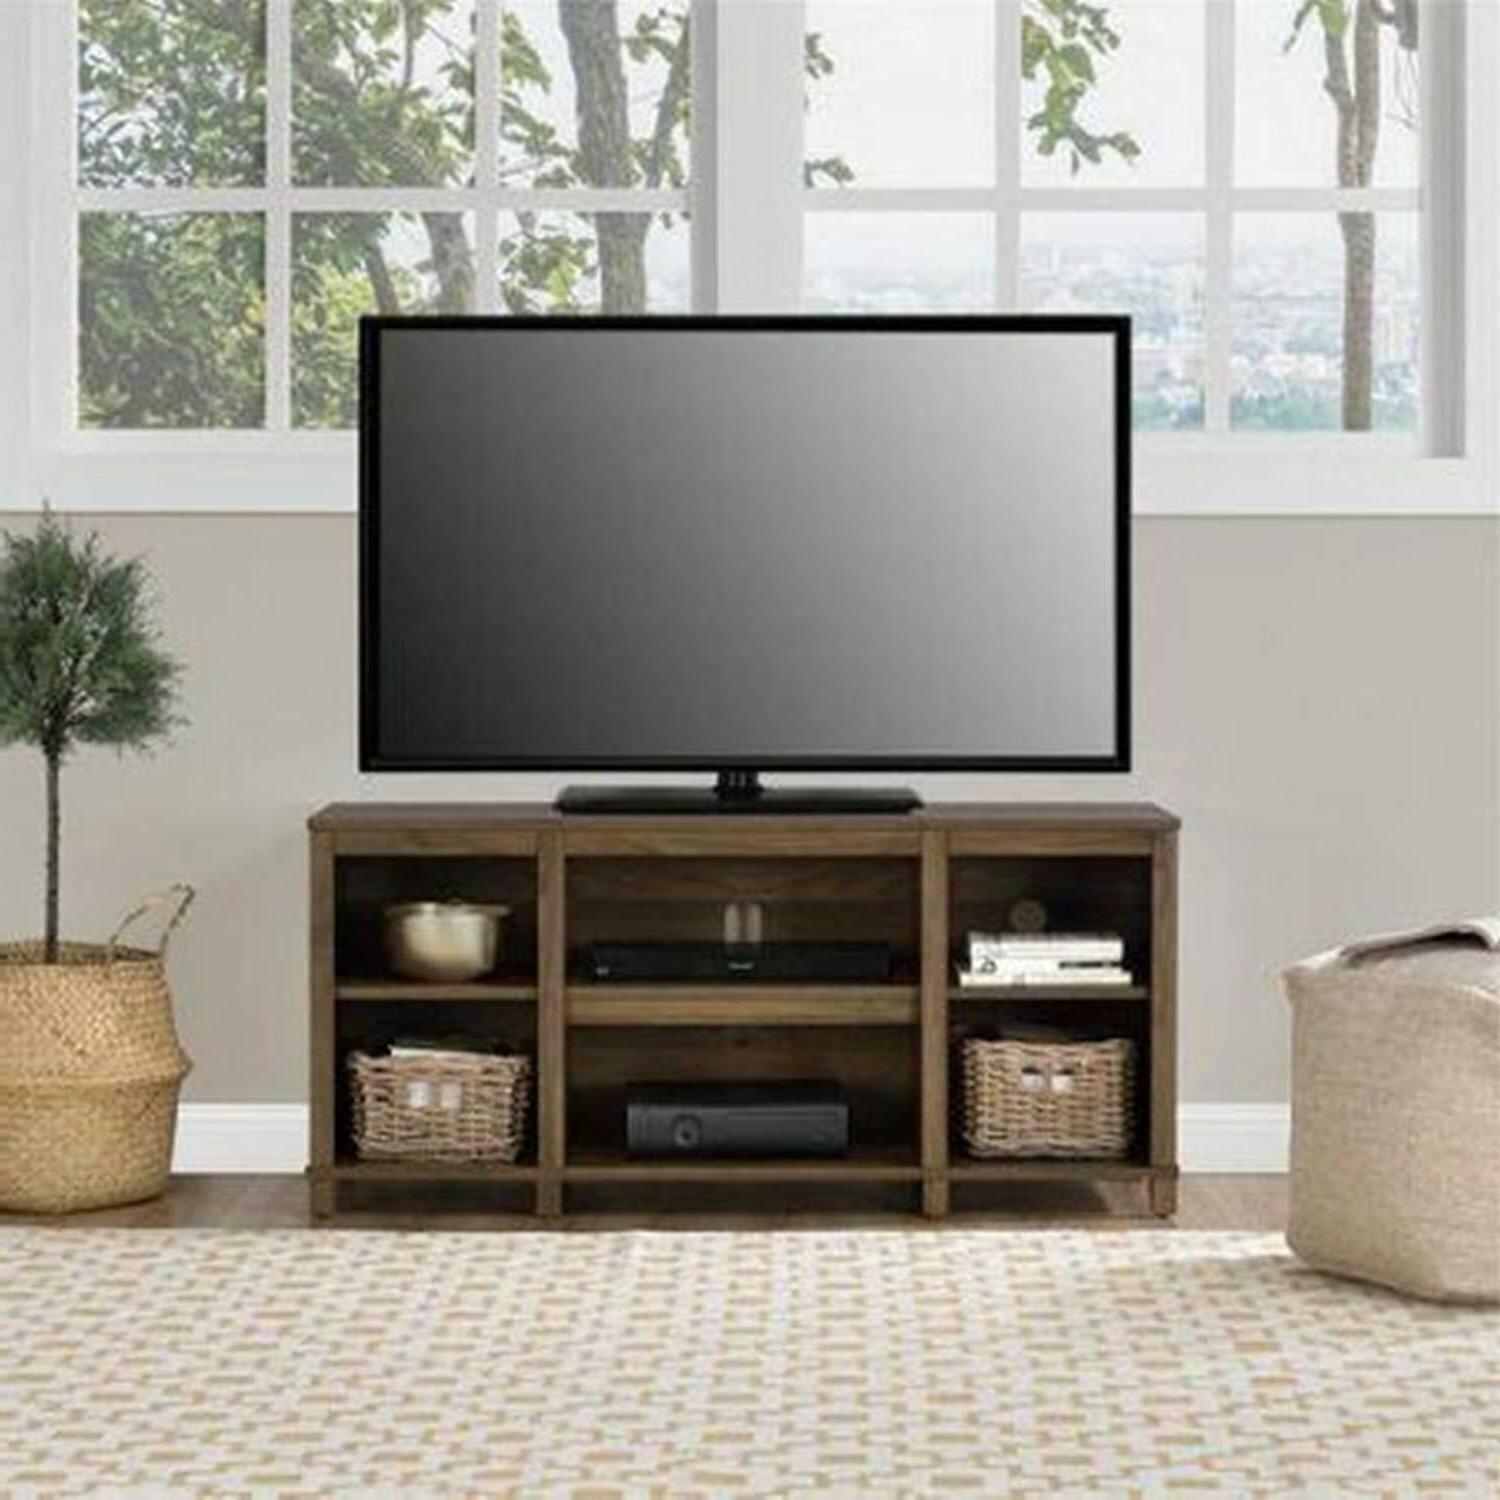 TV Stand Entertainment Center Screen Storage Console Wood